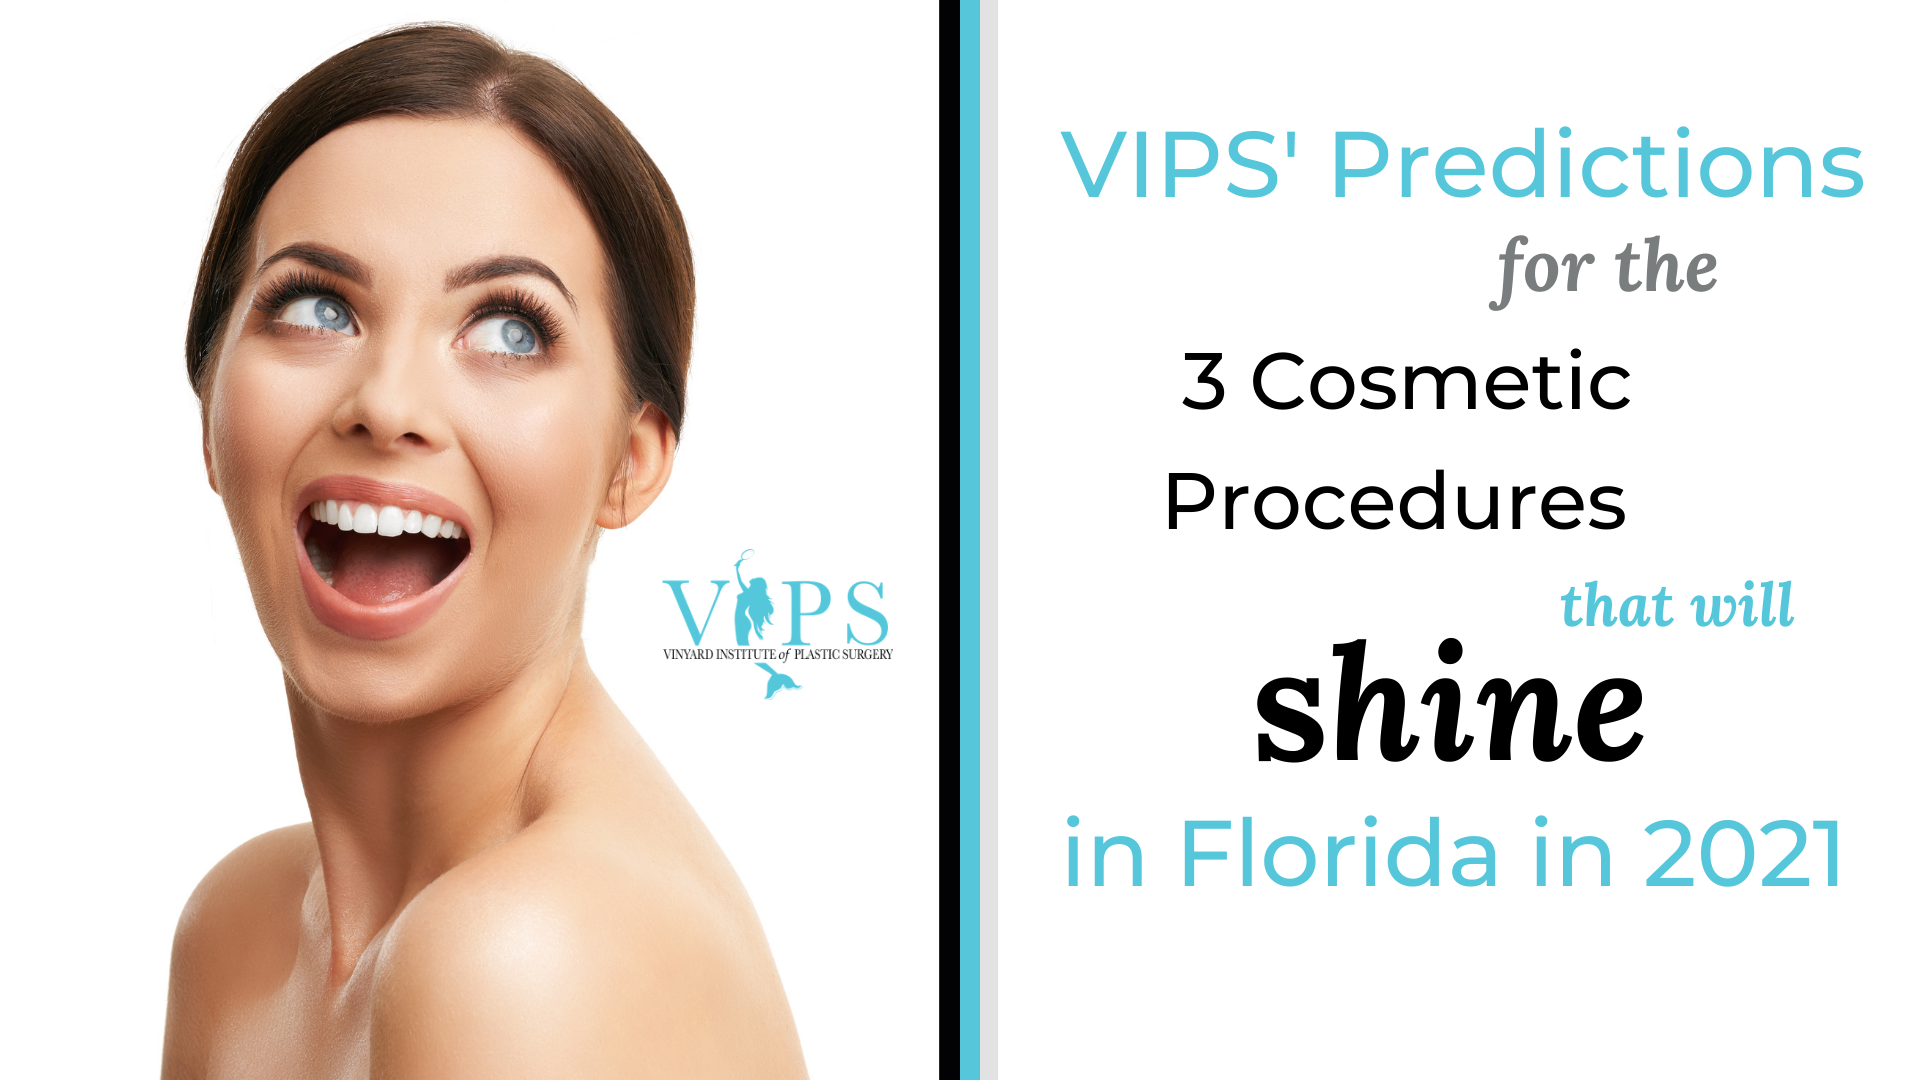 VIPS' Predictions for the 3 Cosmetic Procedures That Will Shine in Florida in 2021